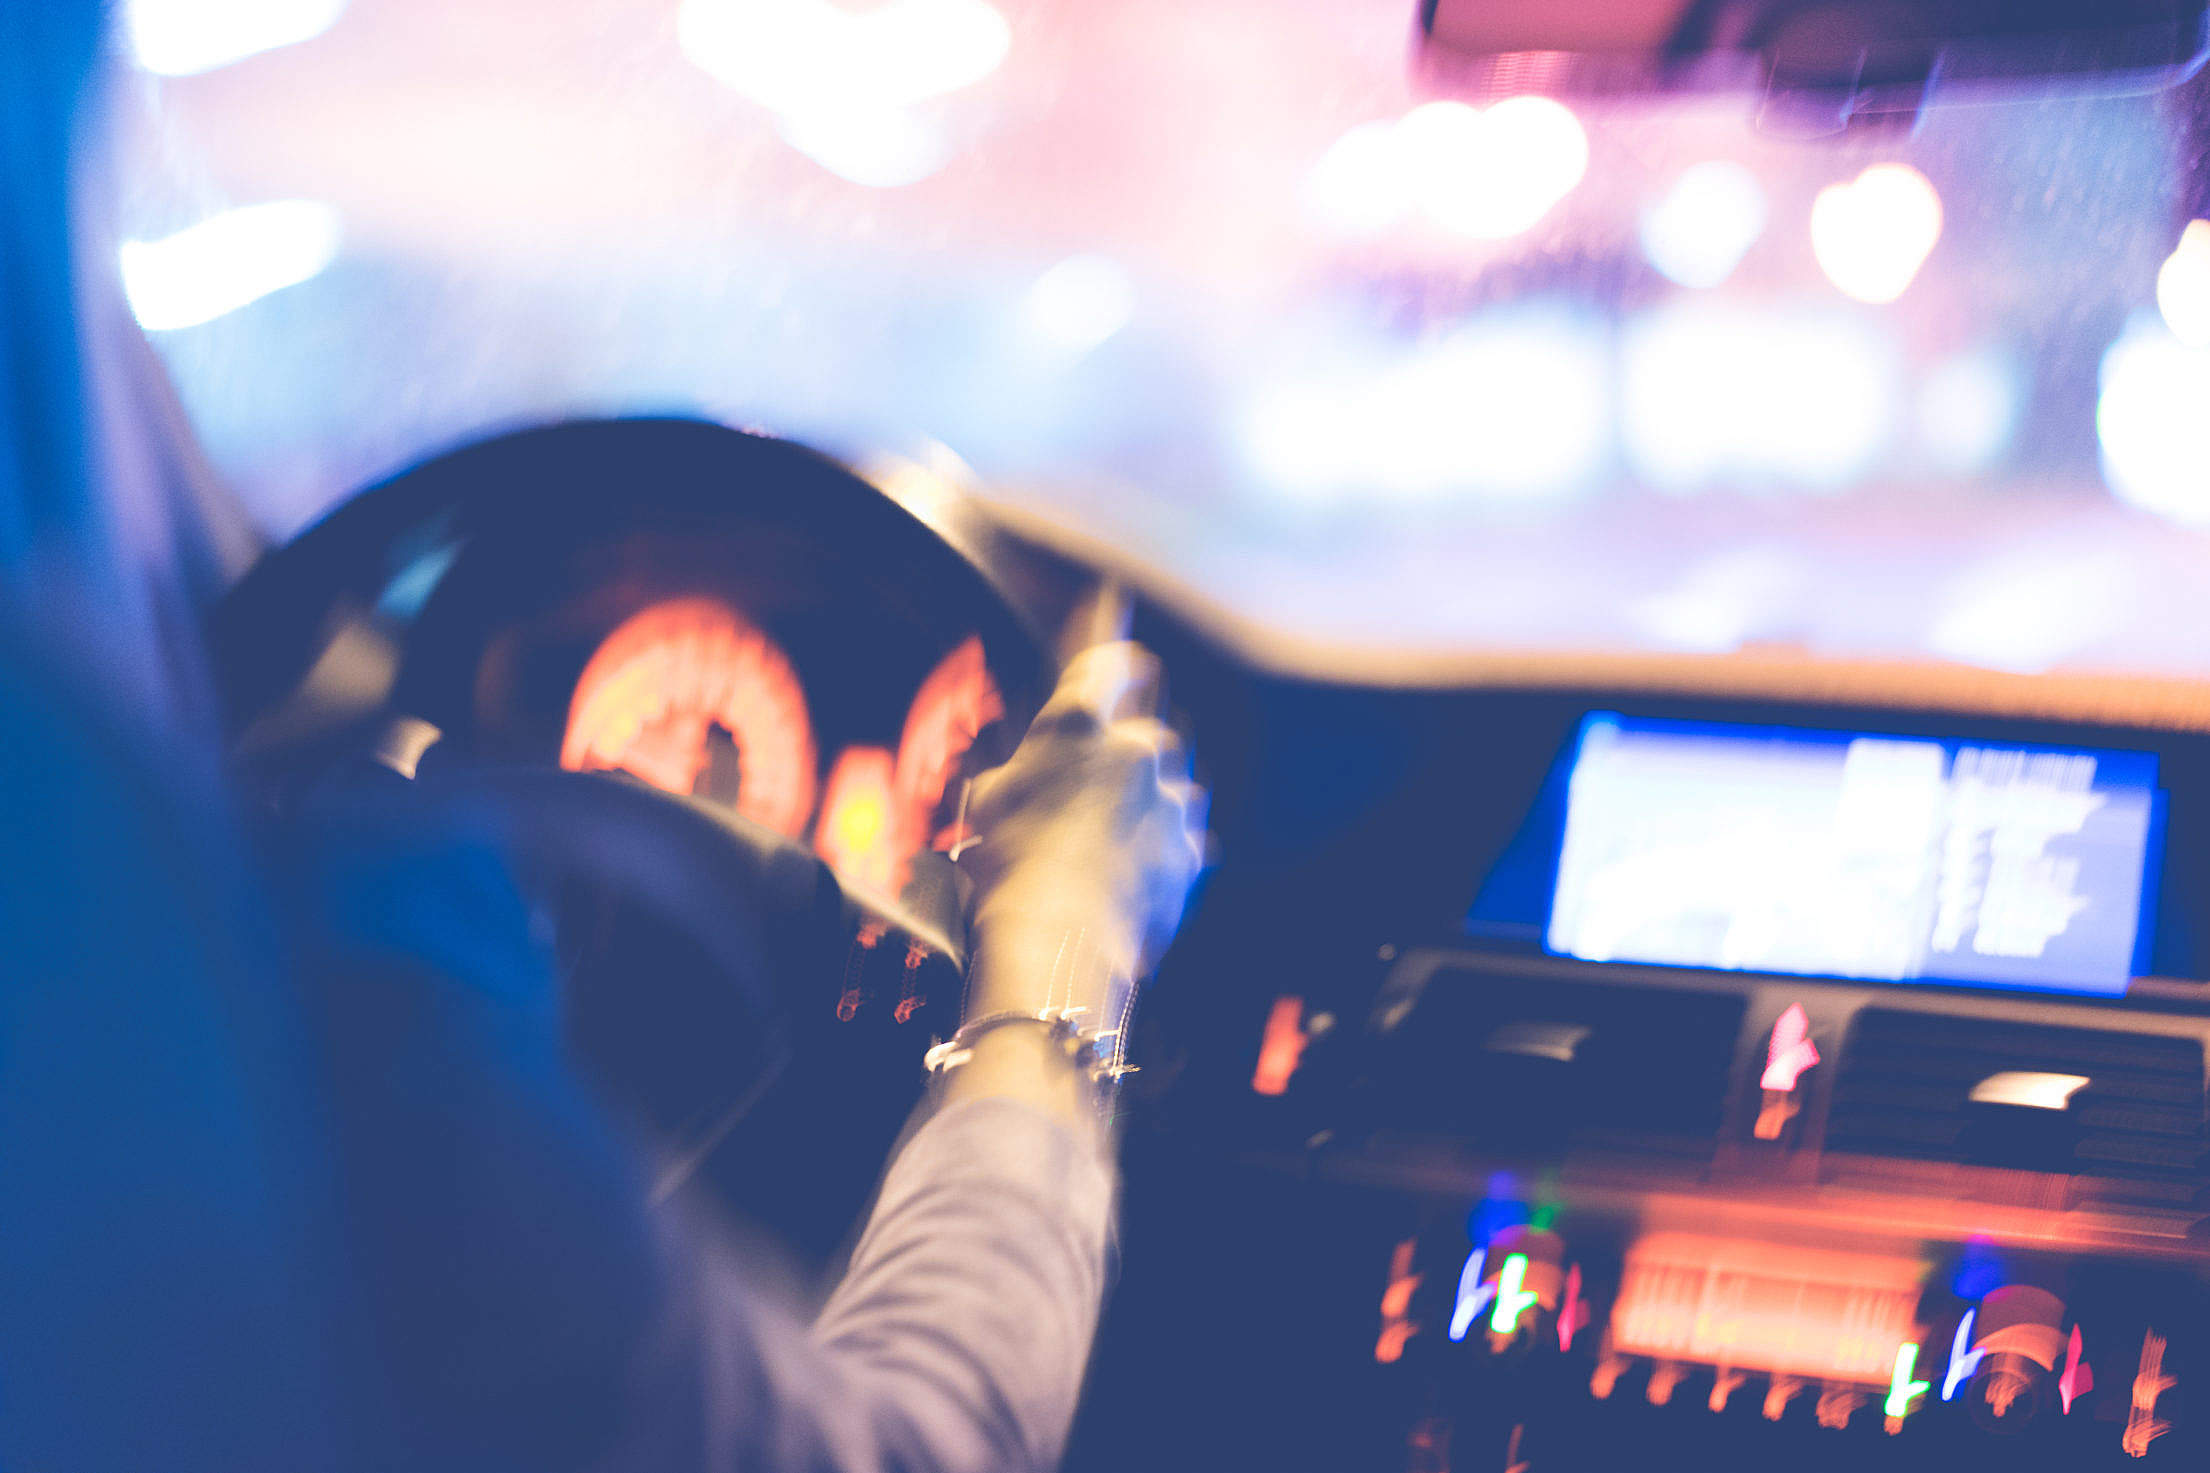 Crazy Driving Woman At Night Free Stock Photo